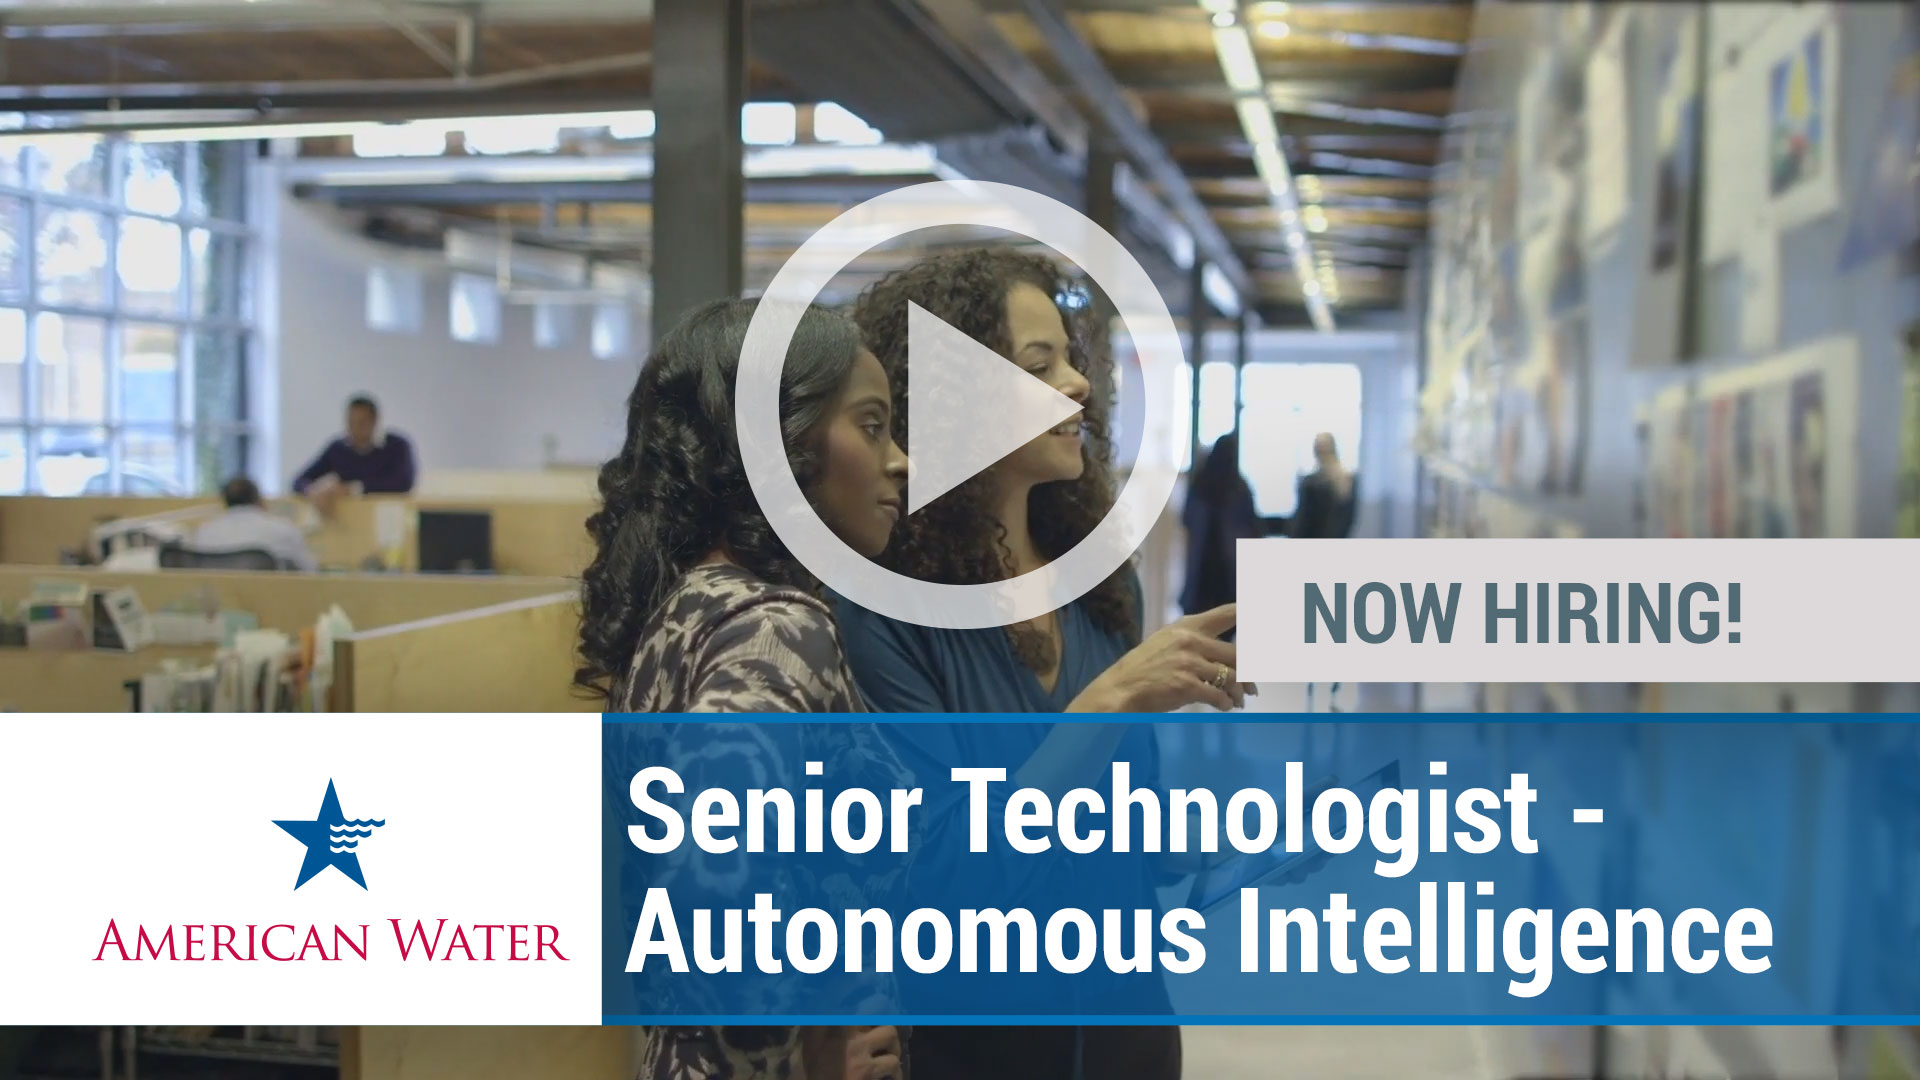 Watch our careers video for available job opening Senior Technologist - Autonomous Intelligence in Camden, NJ, USA